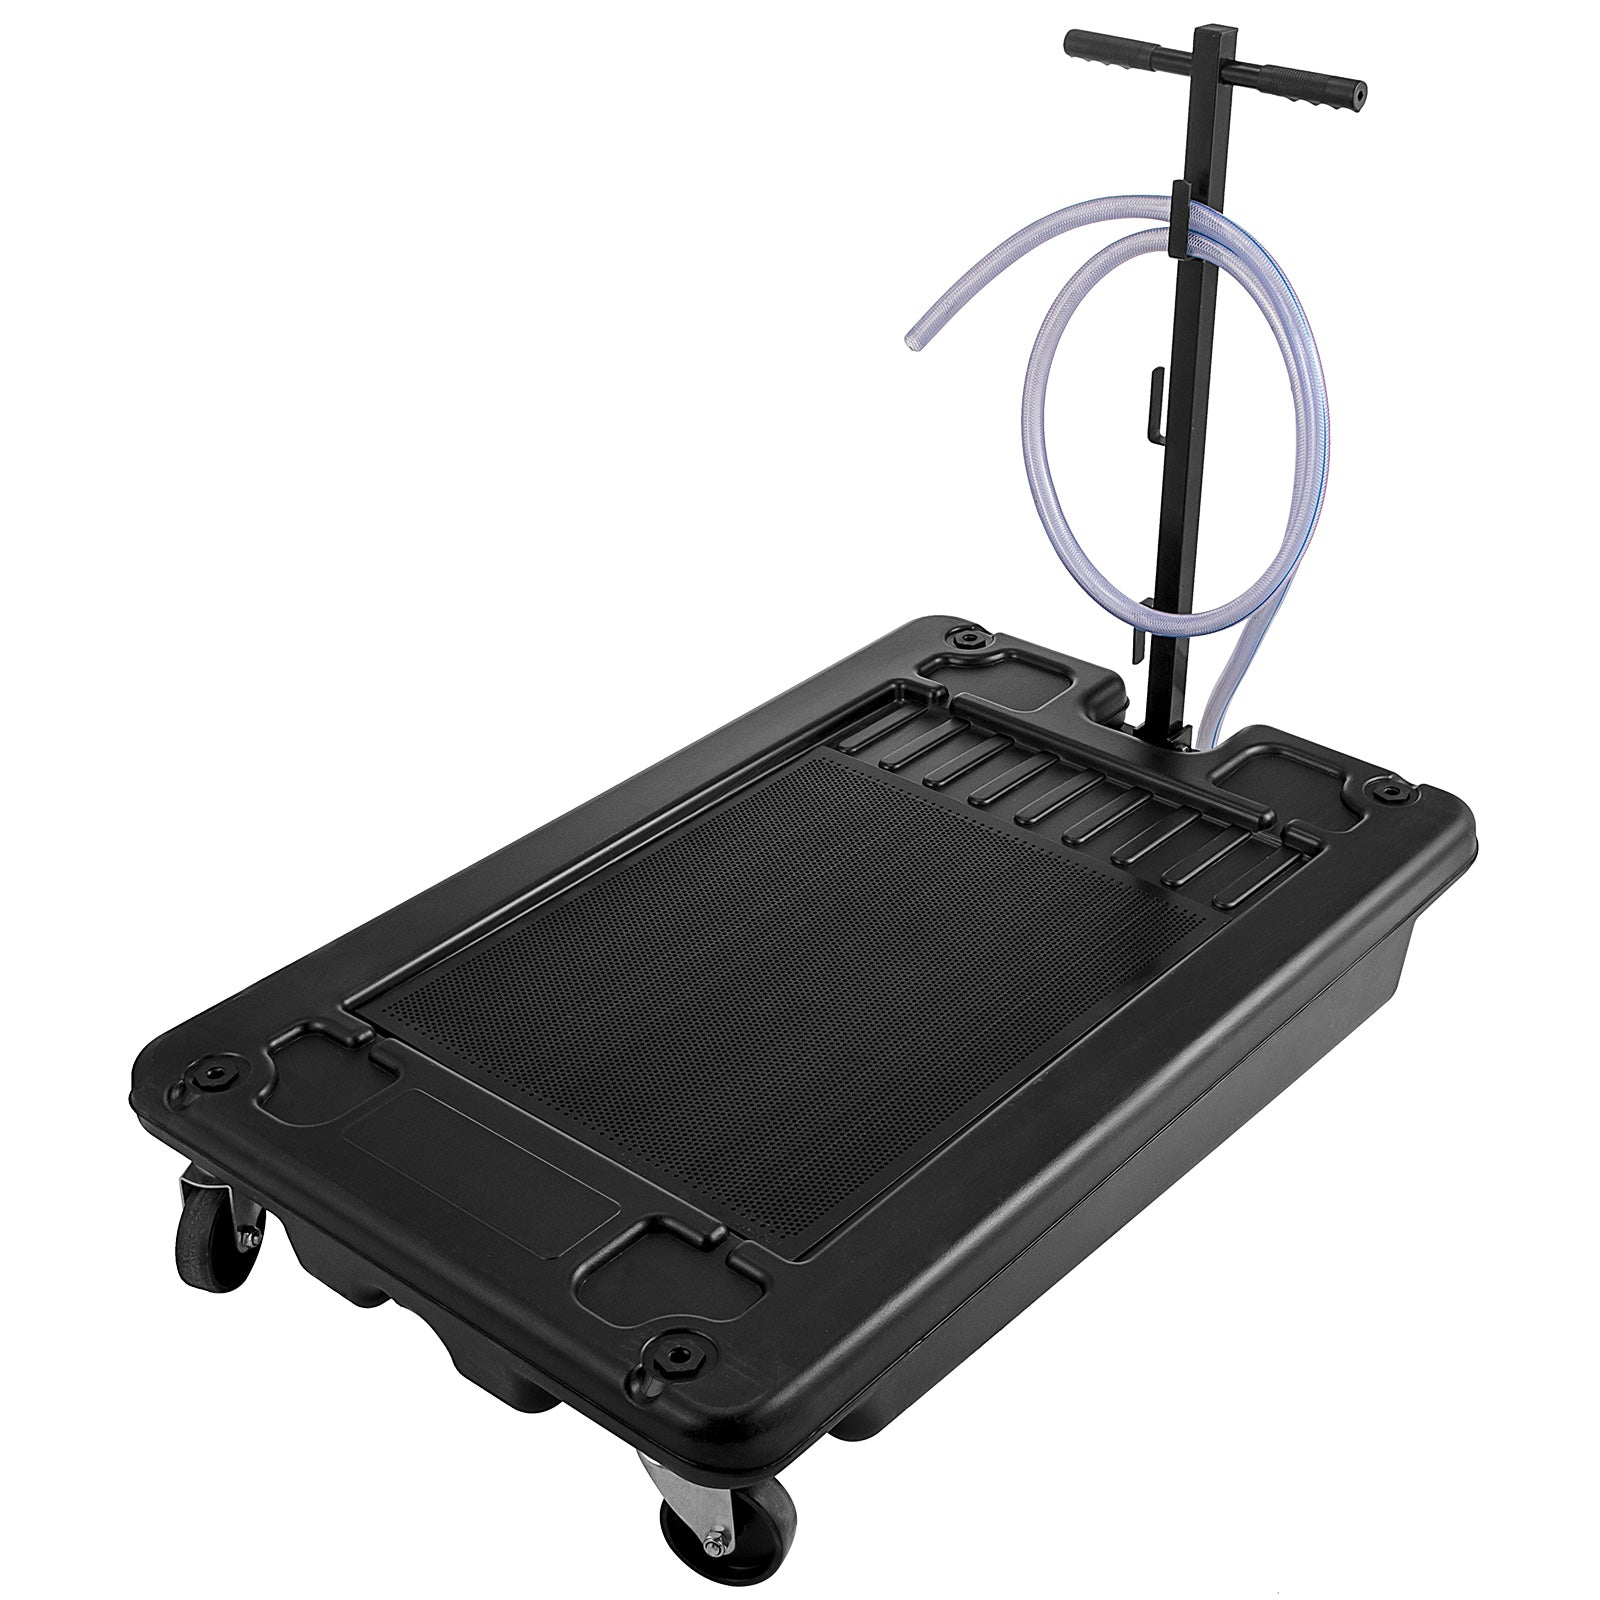 Low Profile Oil Drain Pan 17 Gallon Portable With Electric Pump And 10/' Hose